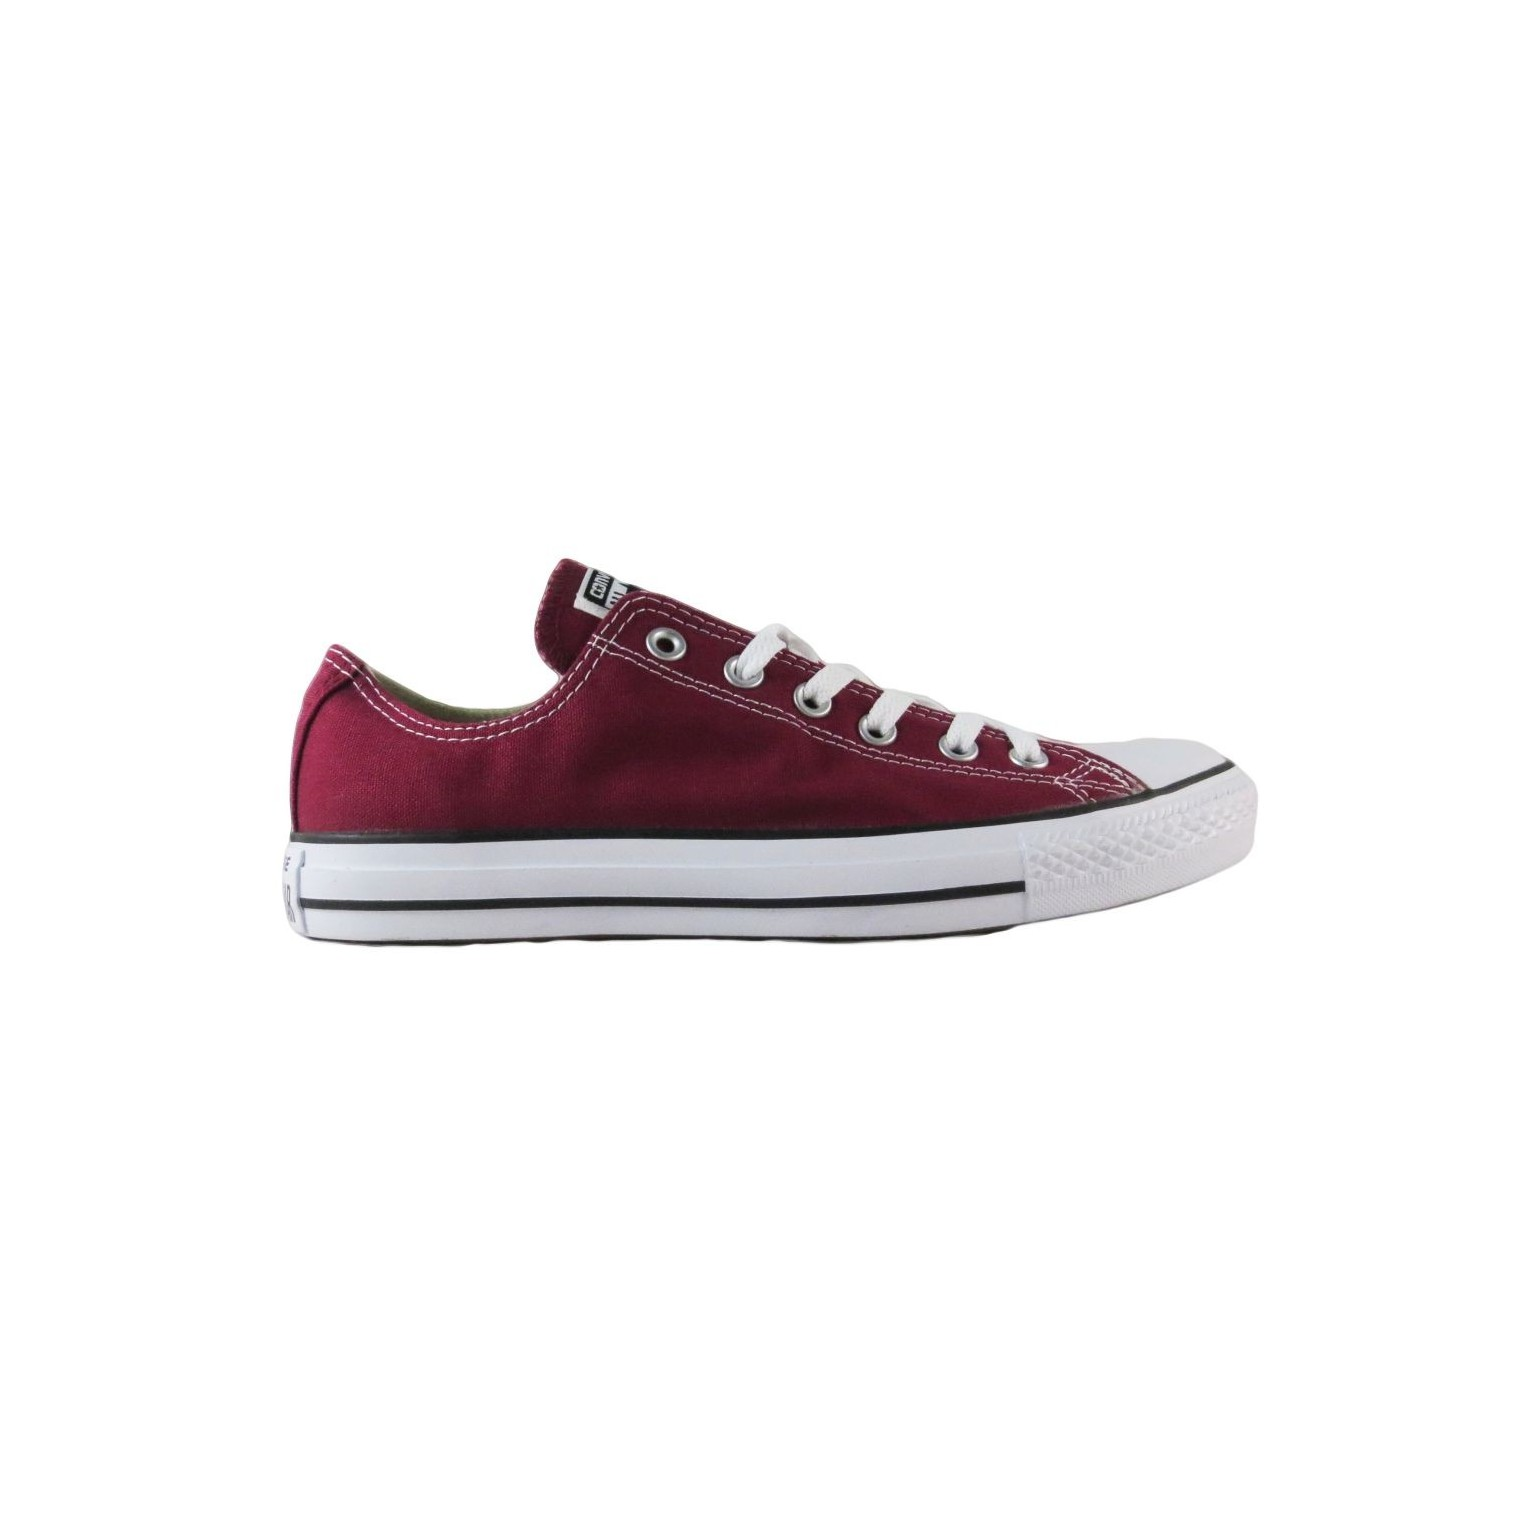 77face8511492 converse-all-star-women-s-sneakers-ox-maroon-m9691c.jpg